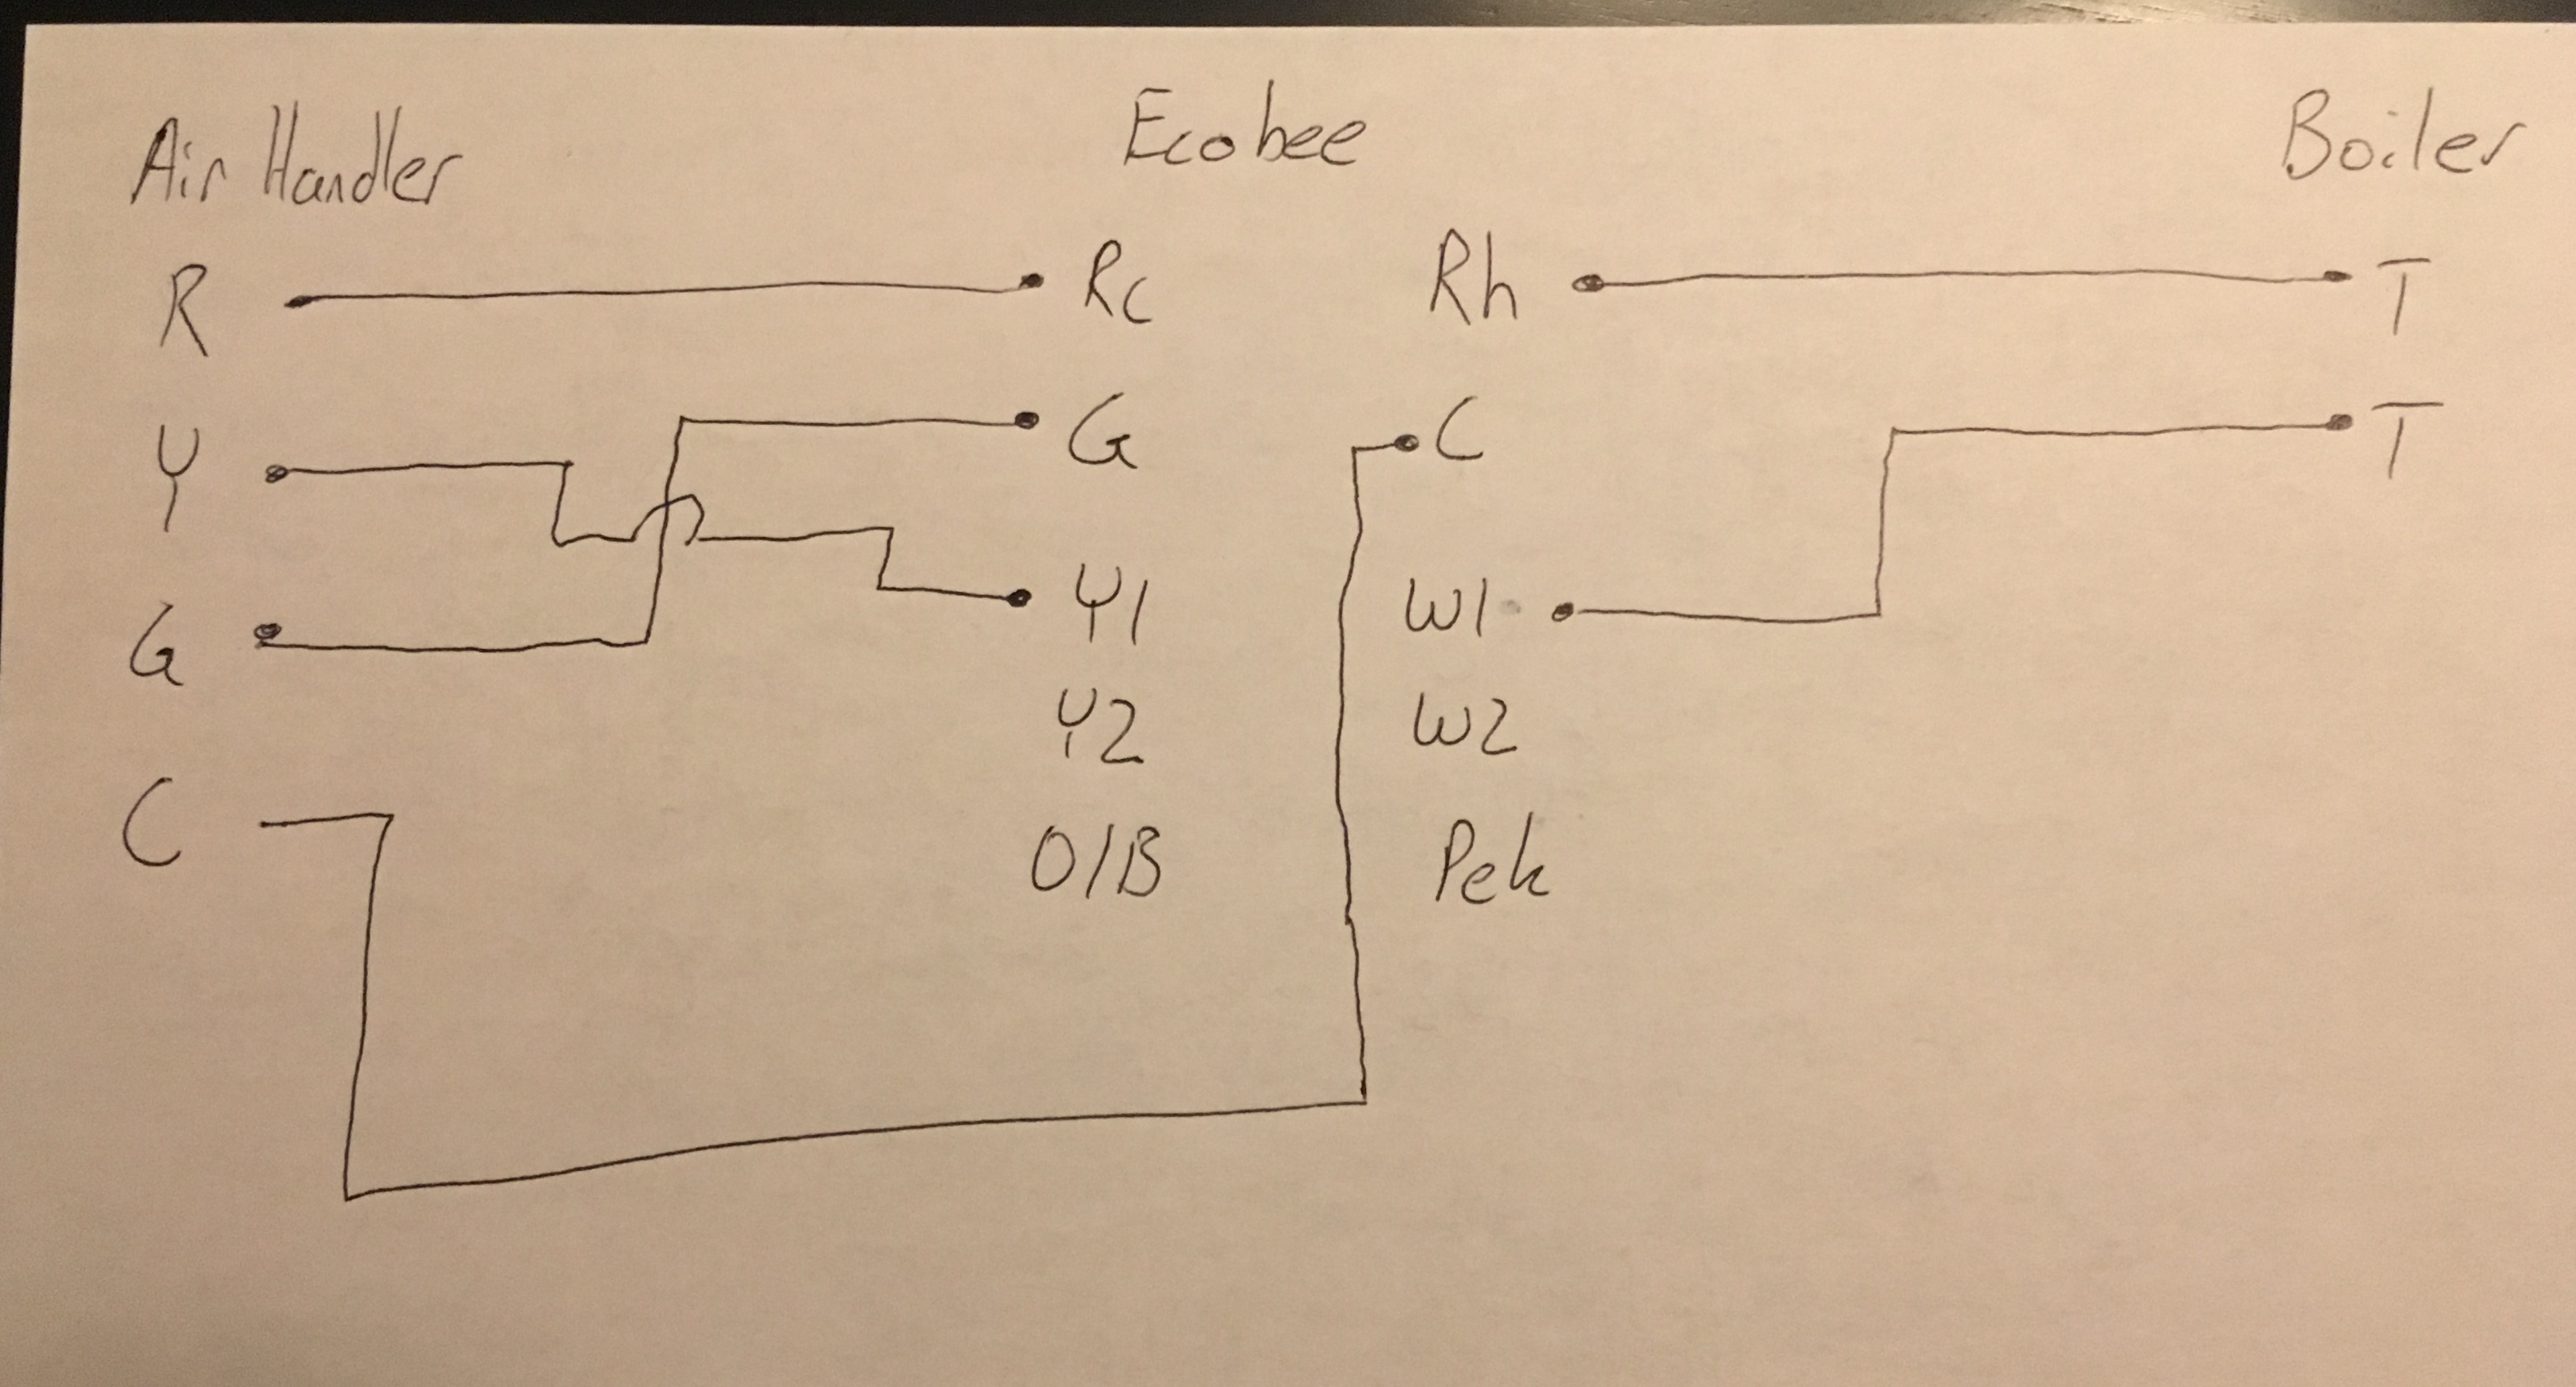 Ecobee 3 With Carlin And Buderus Boiler Macrumors Forums Aquastat Wiring Diagram Old That Y Wire Is Jumping Over The G Not Connected Together